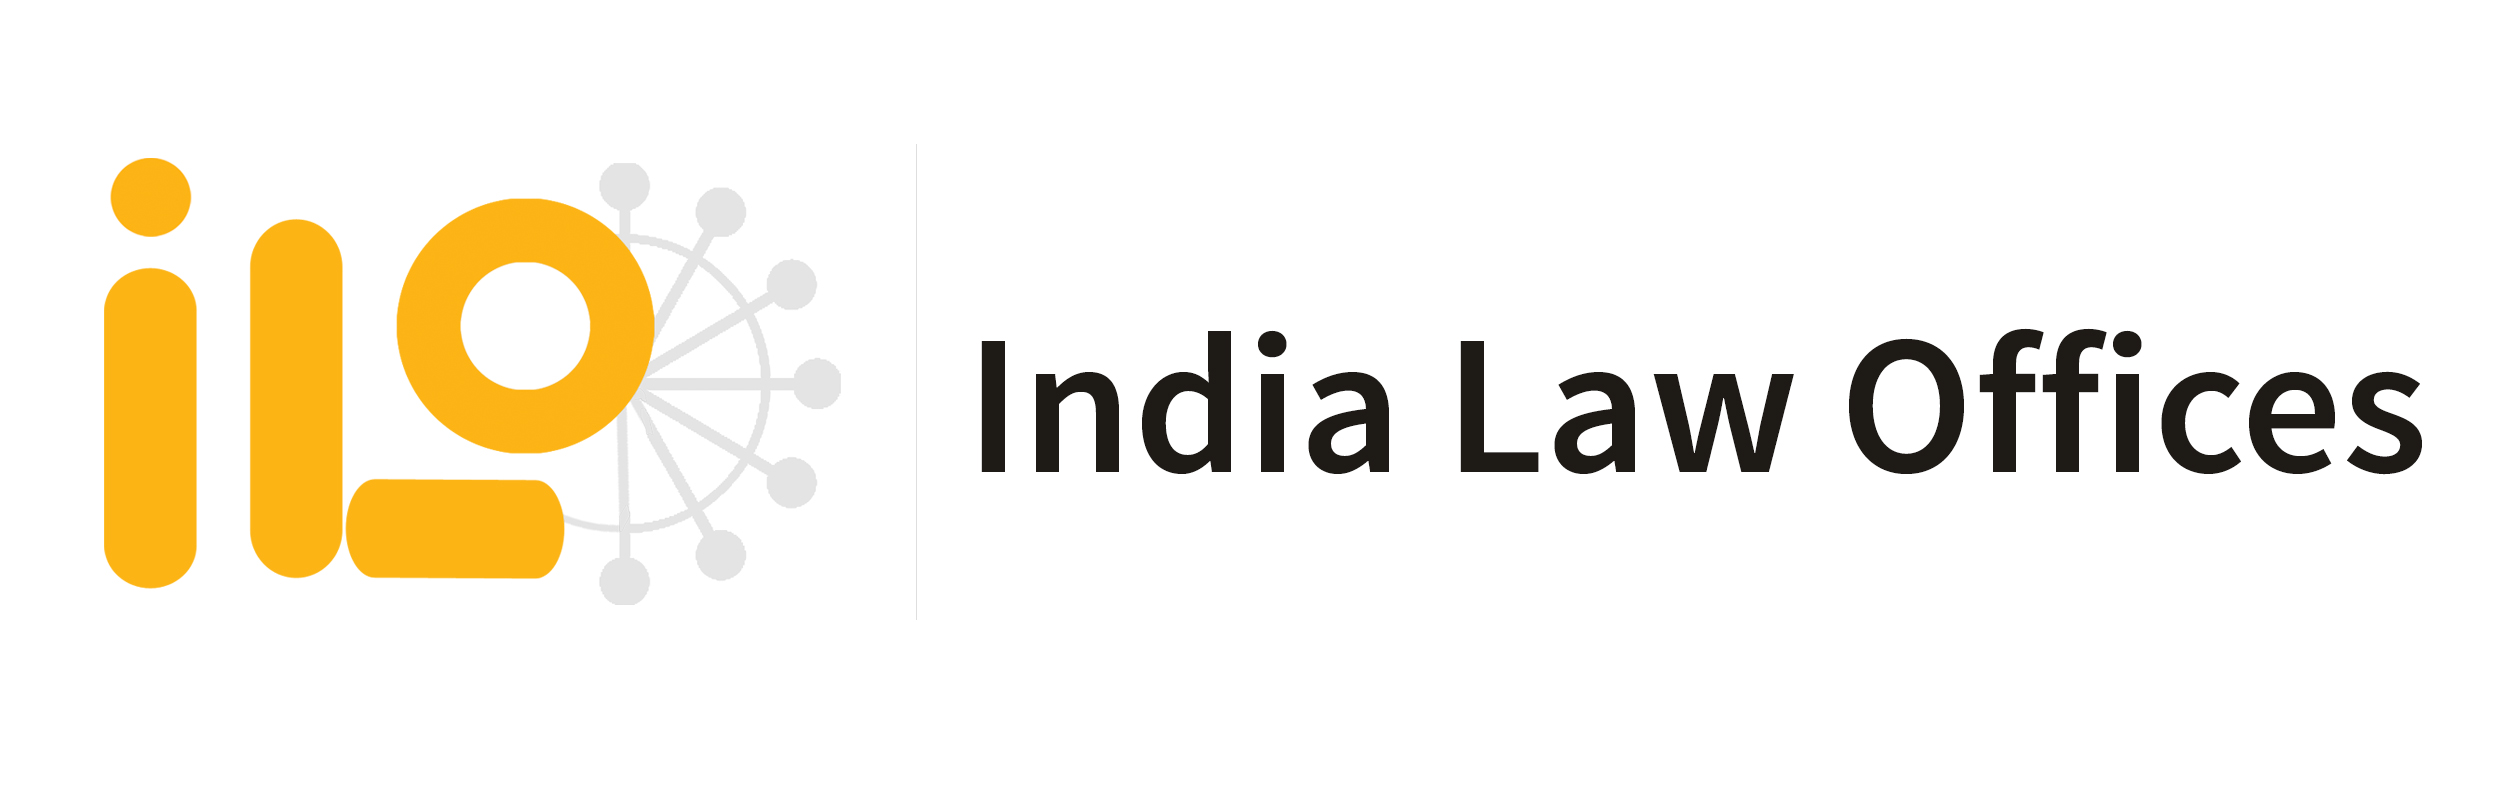 India Law Offices LLP logo